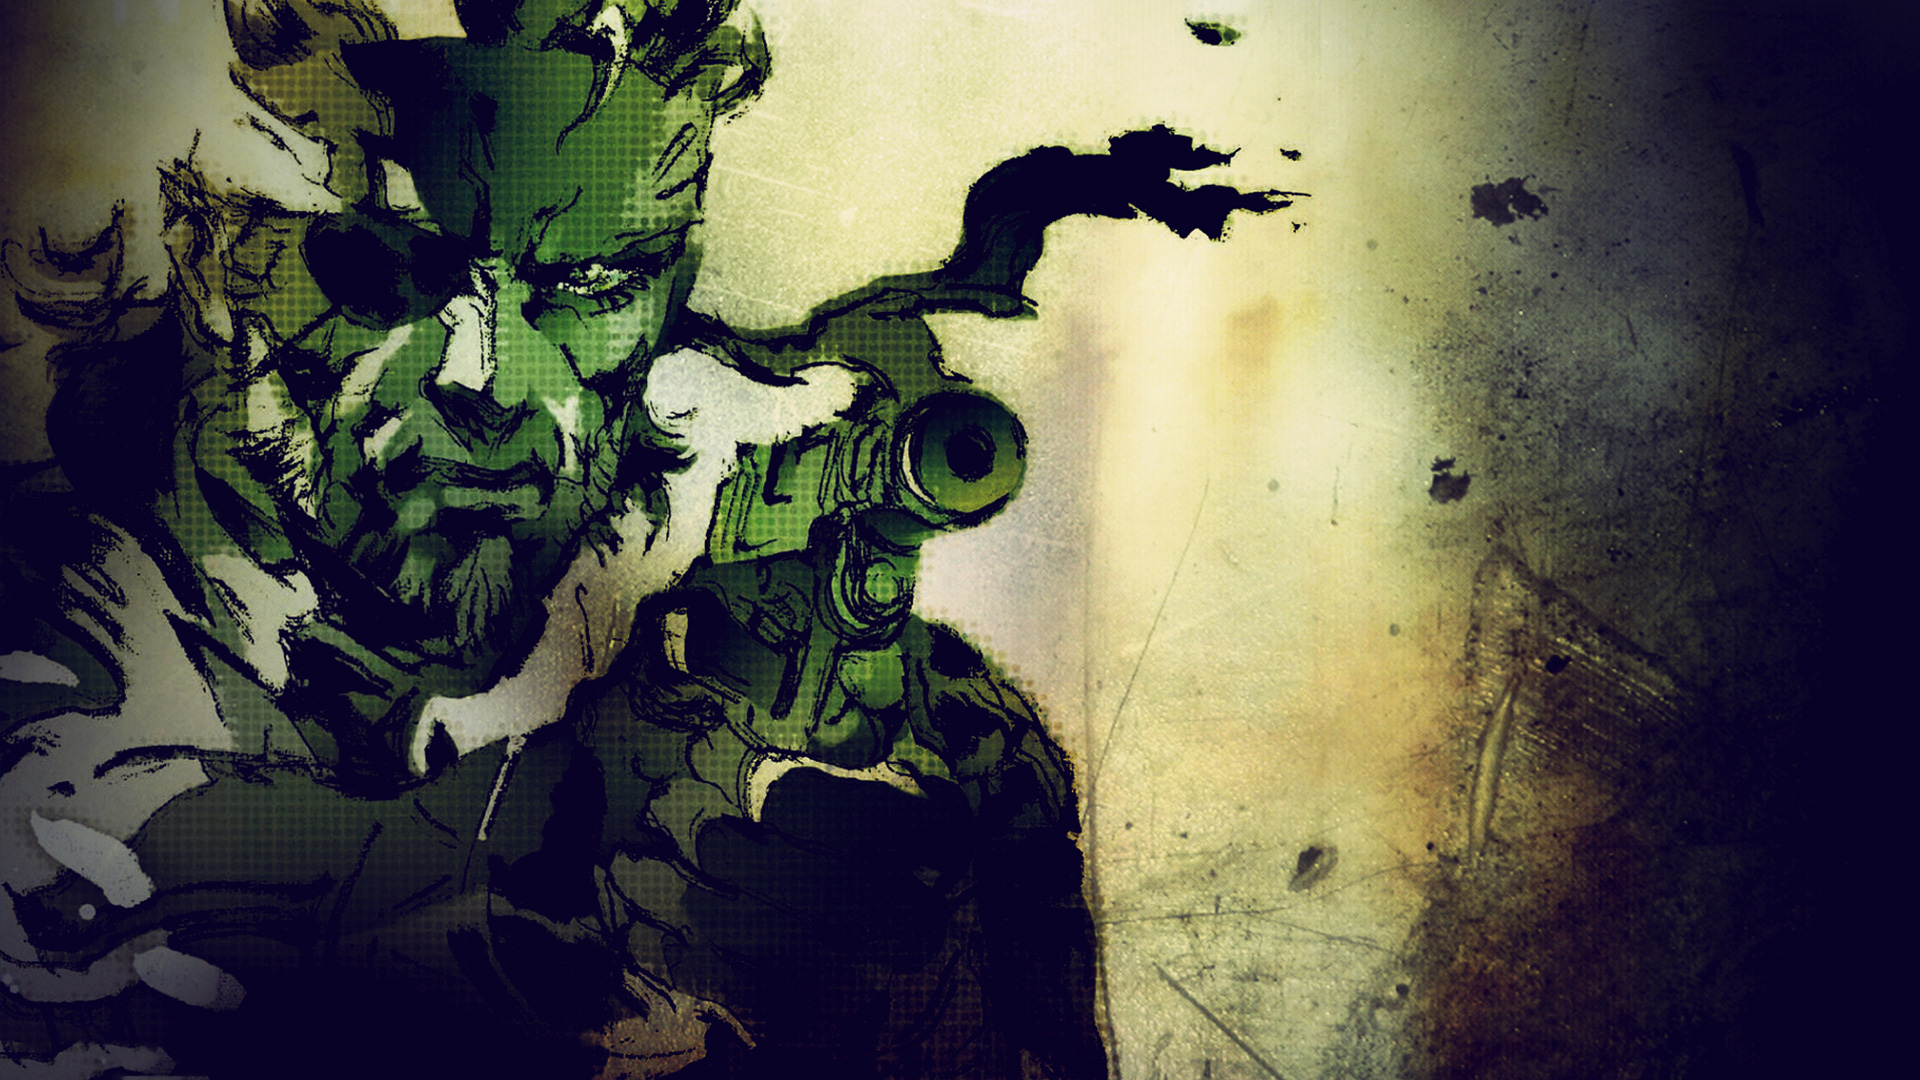 metal gear solid 3 wallpaper 1080p